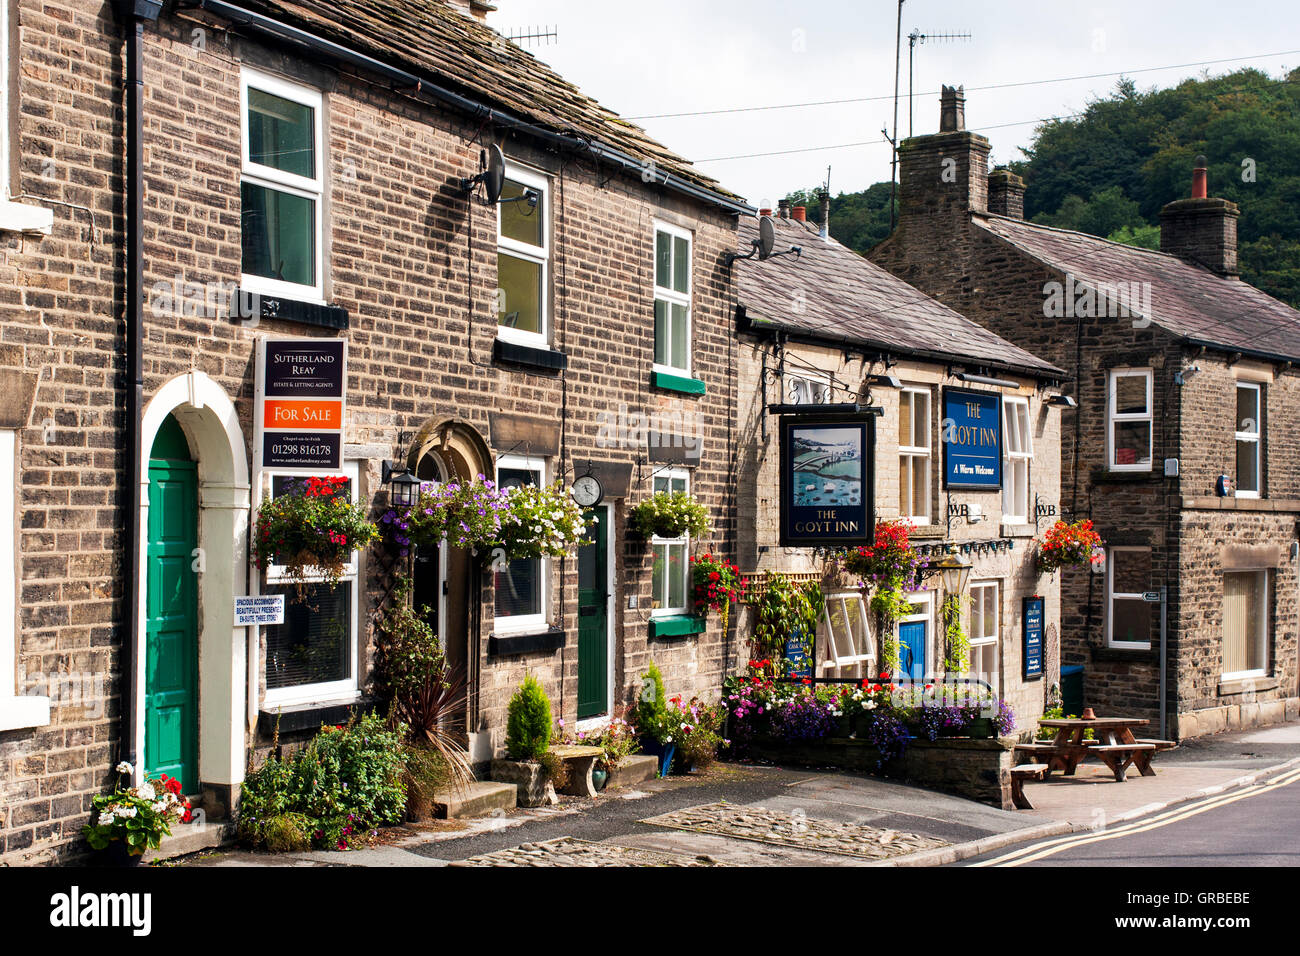 Whalley Bridge Derbyshire. Road with Pub and House for Sale - Stock Image